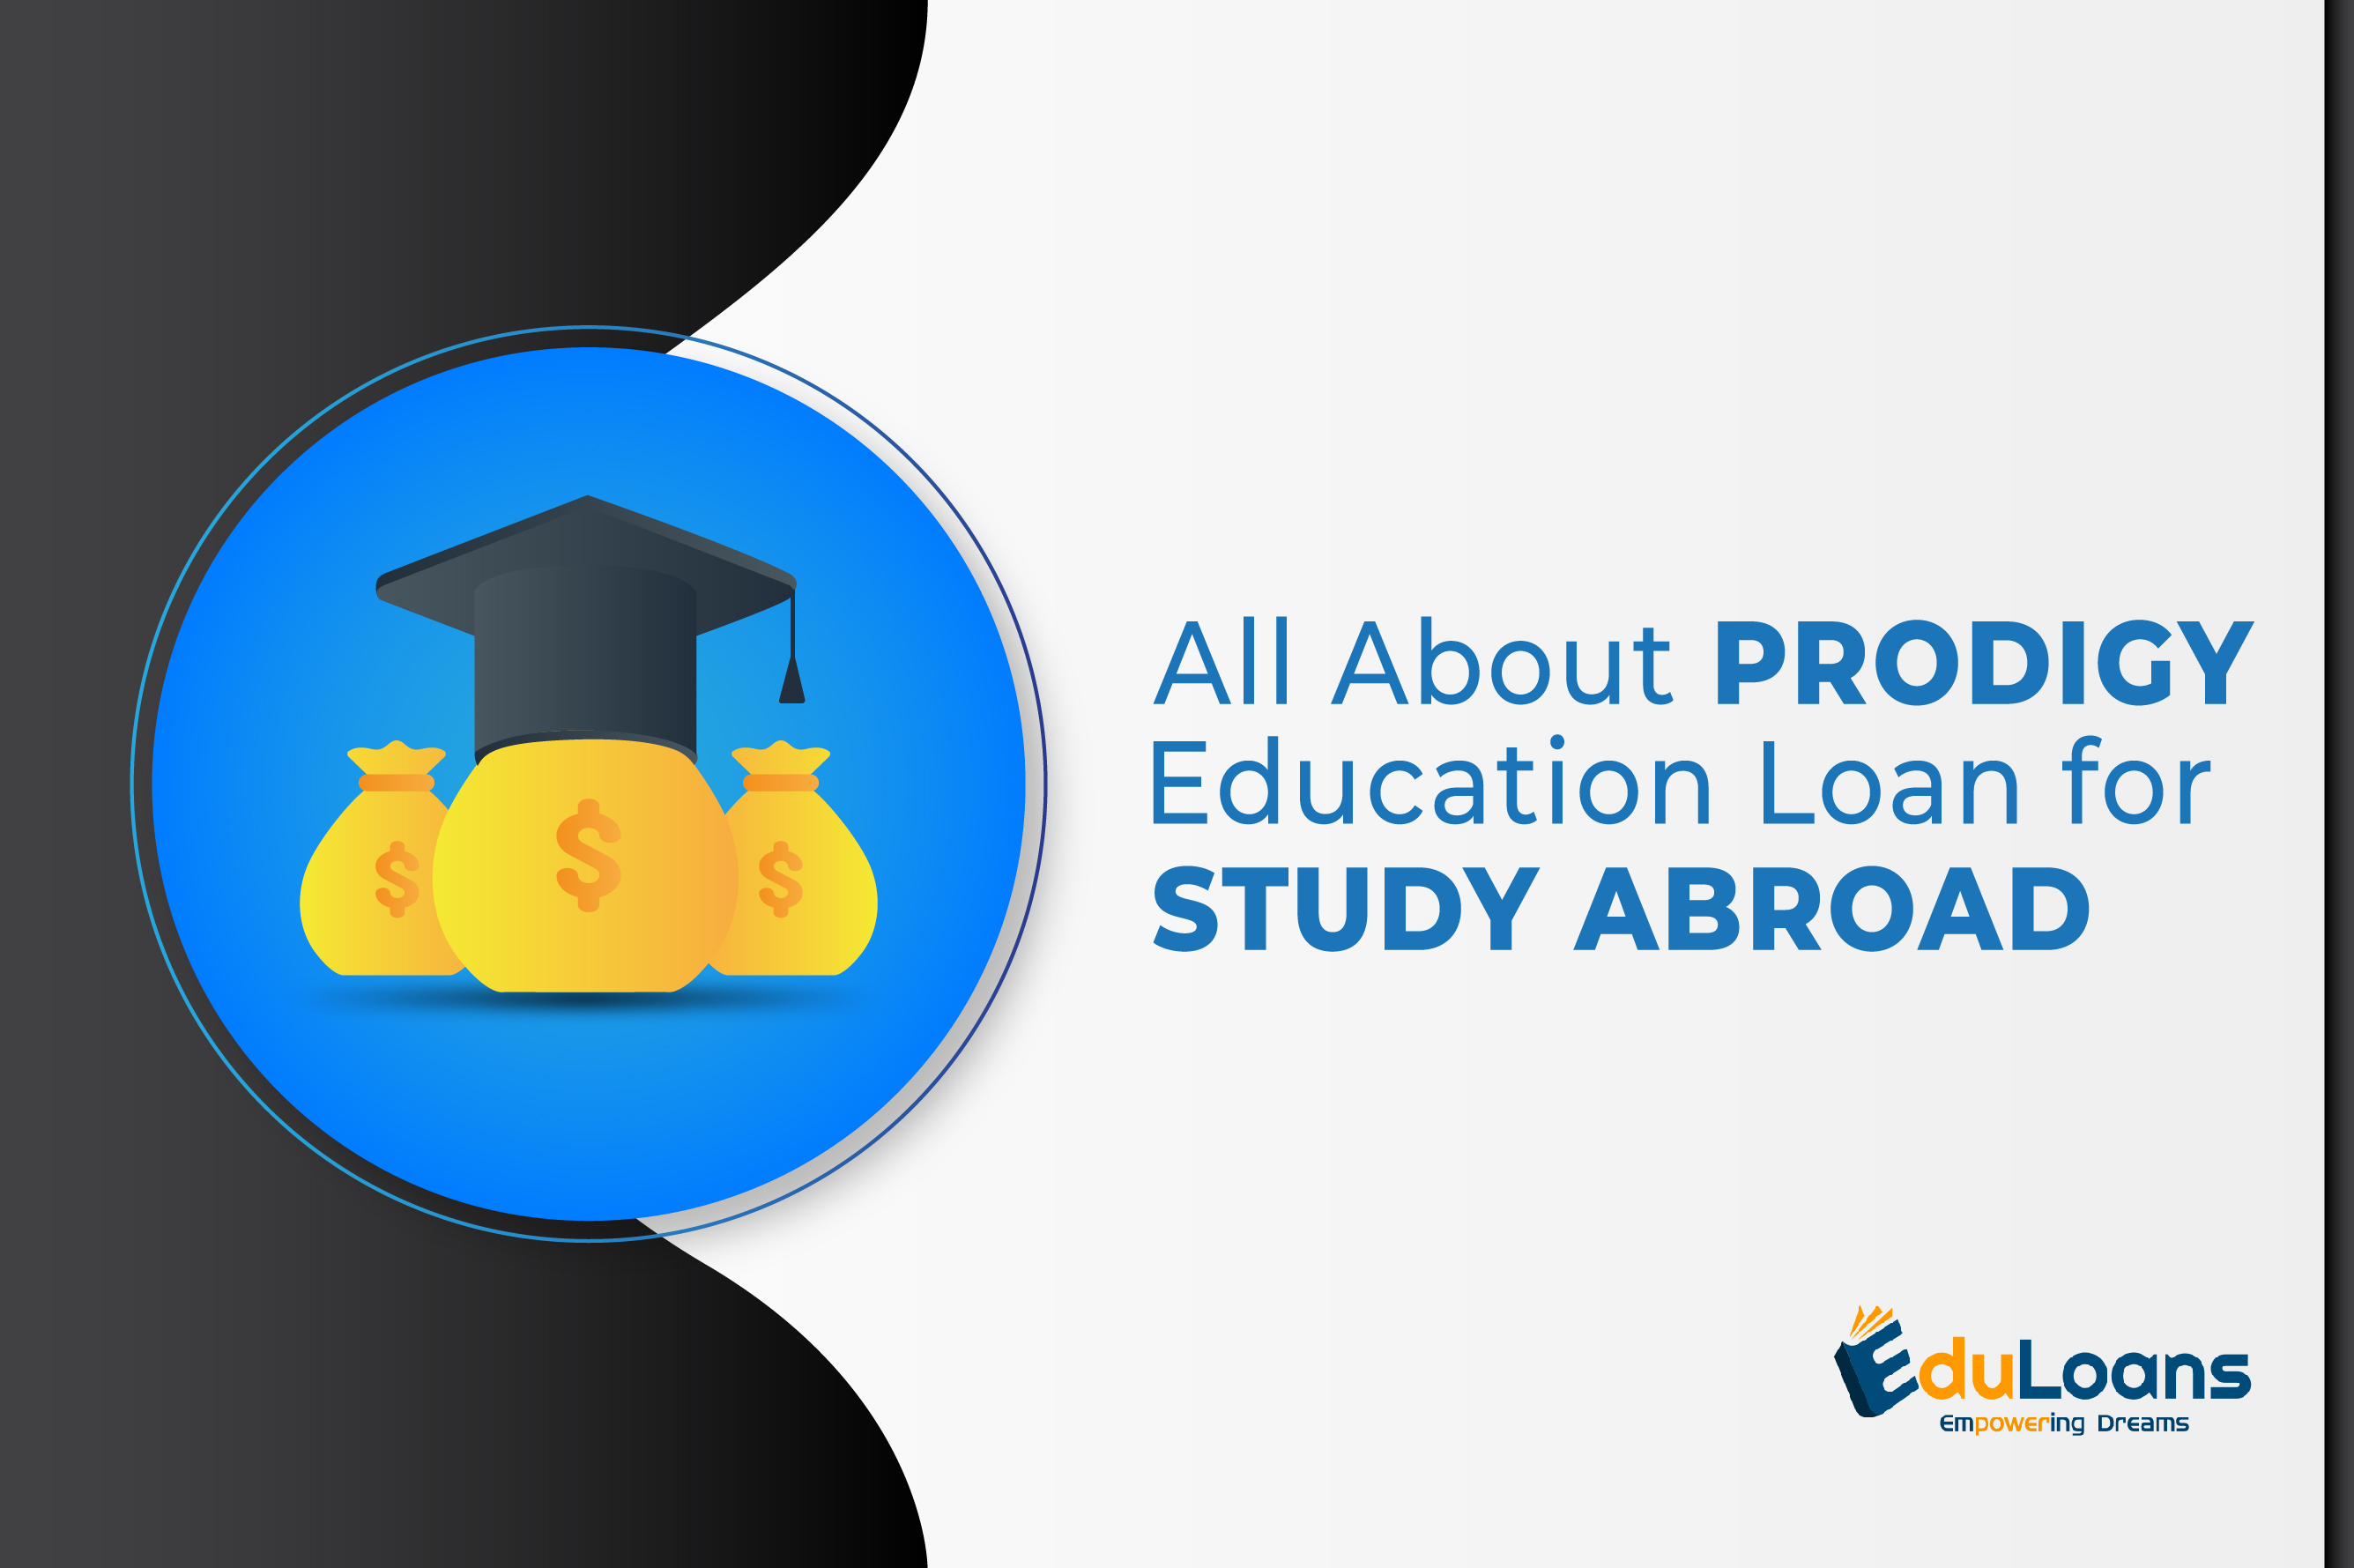 All About Prodigy Education Loan for Study Abroad